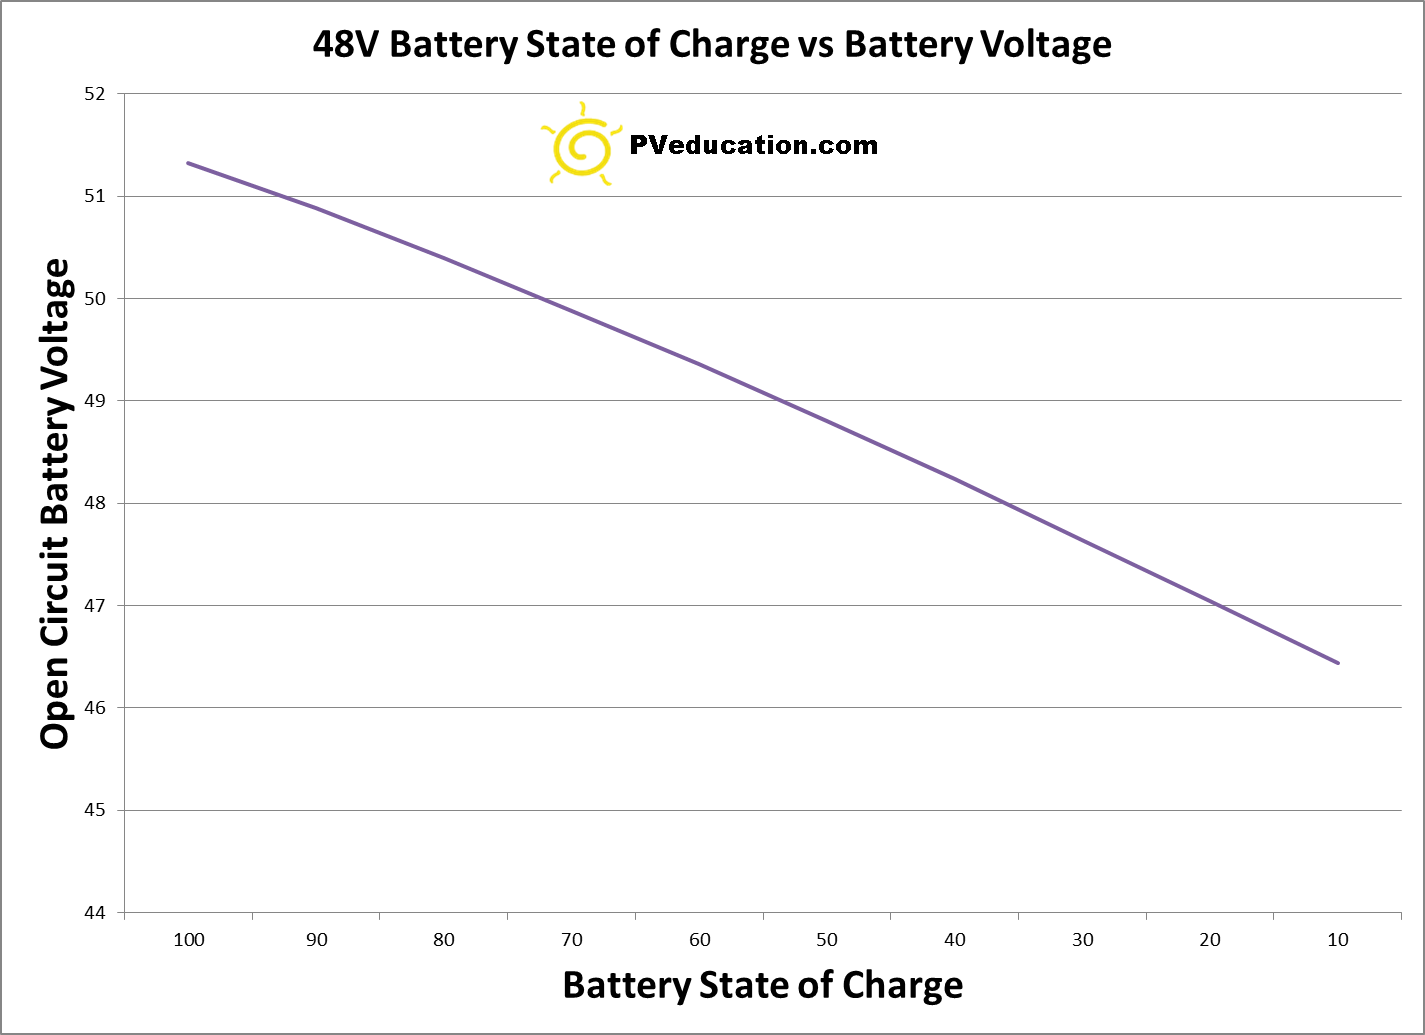 State Of Charge Battery Monitor : Battery state of charge vs voltage